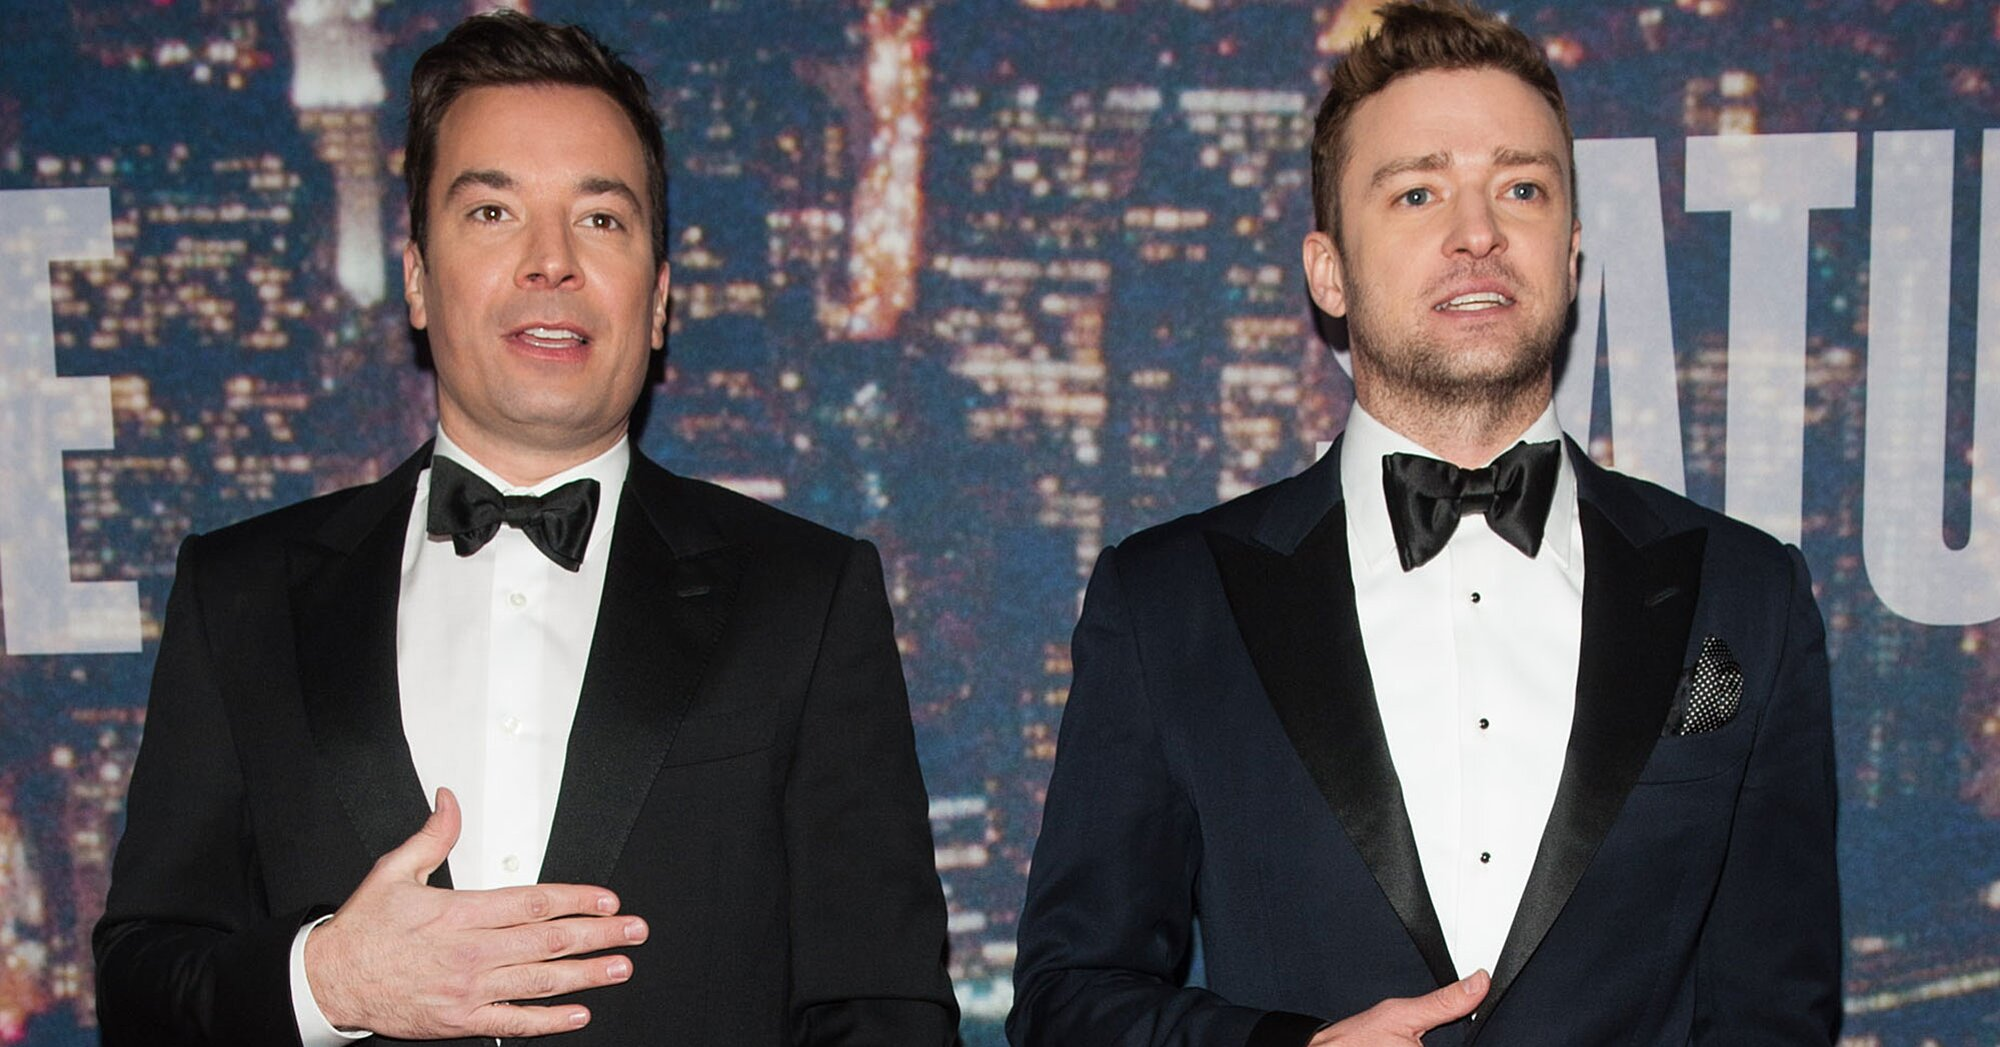 Watch Jimmy Fallon and Justin Timberlake look back at the history of their bromance